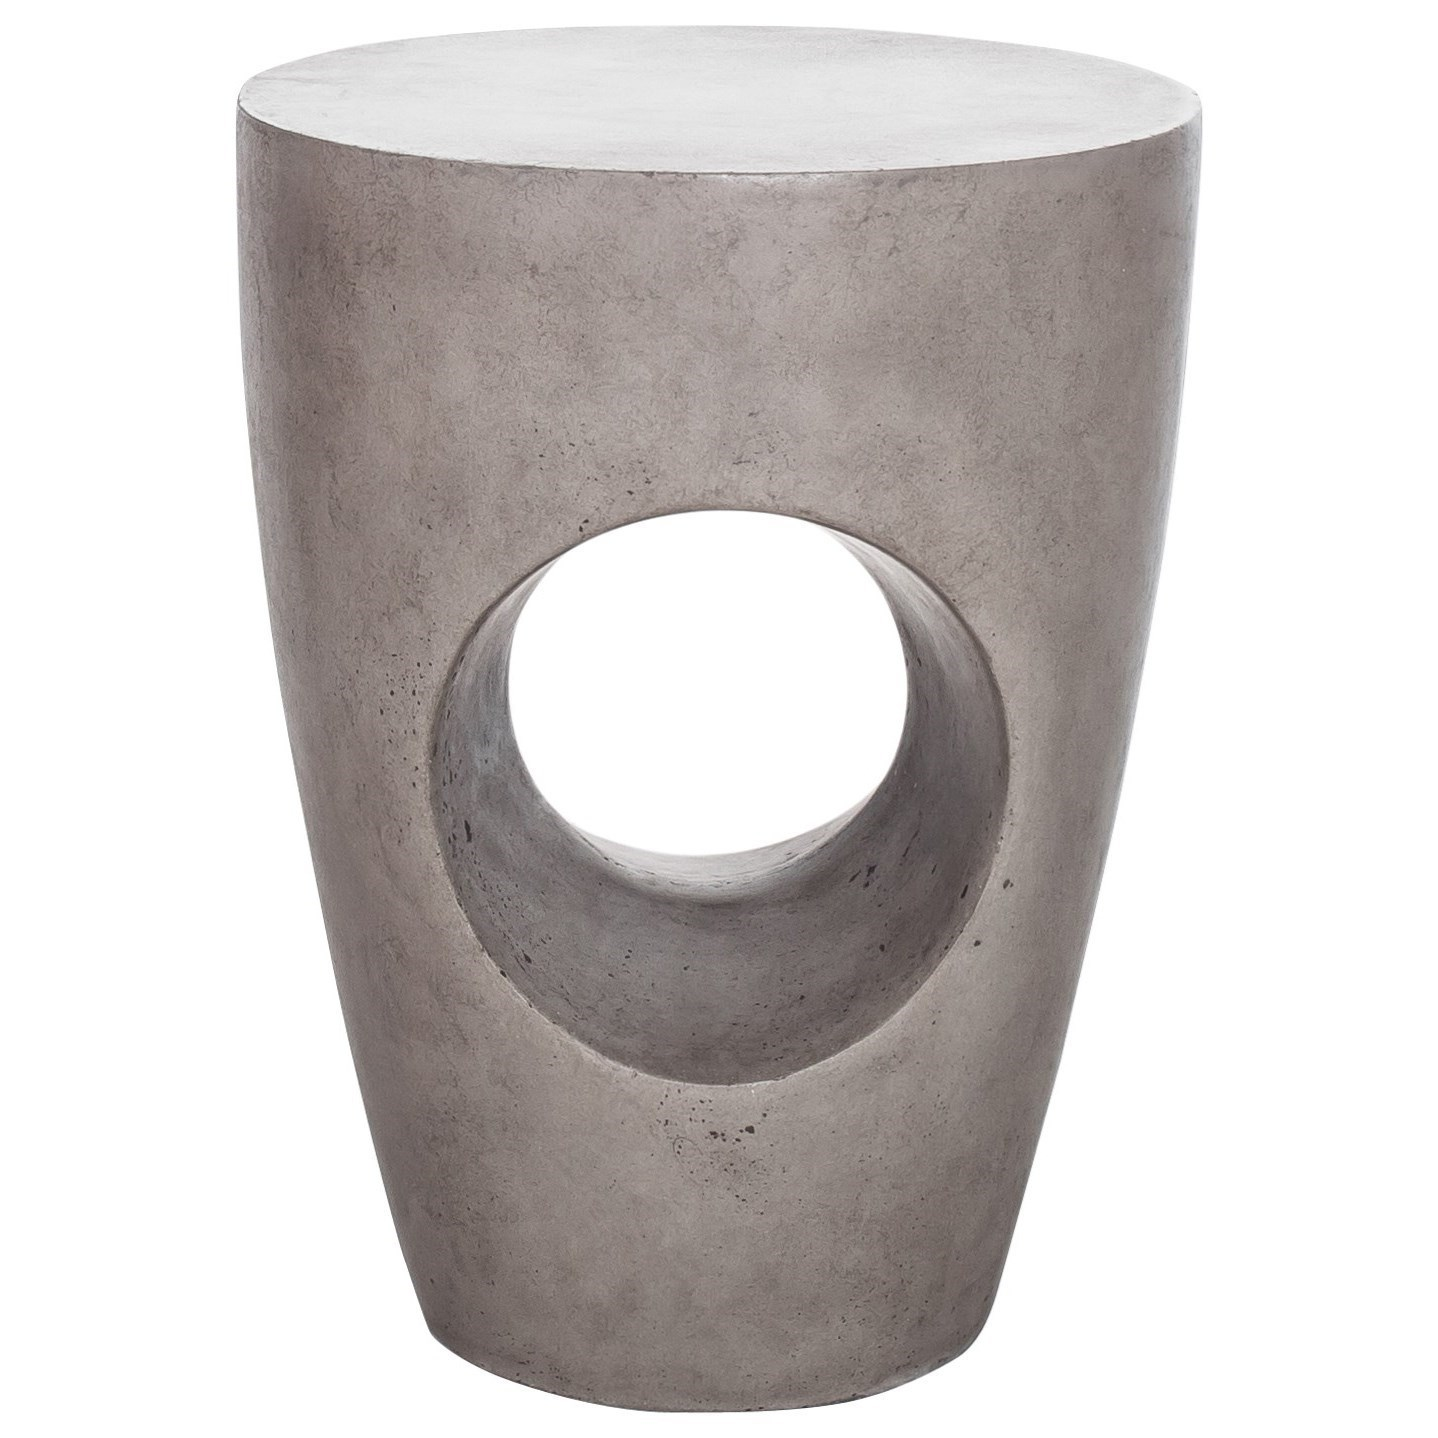 Natural Concrete Outdoor Stool